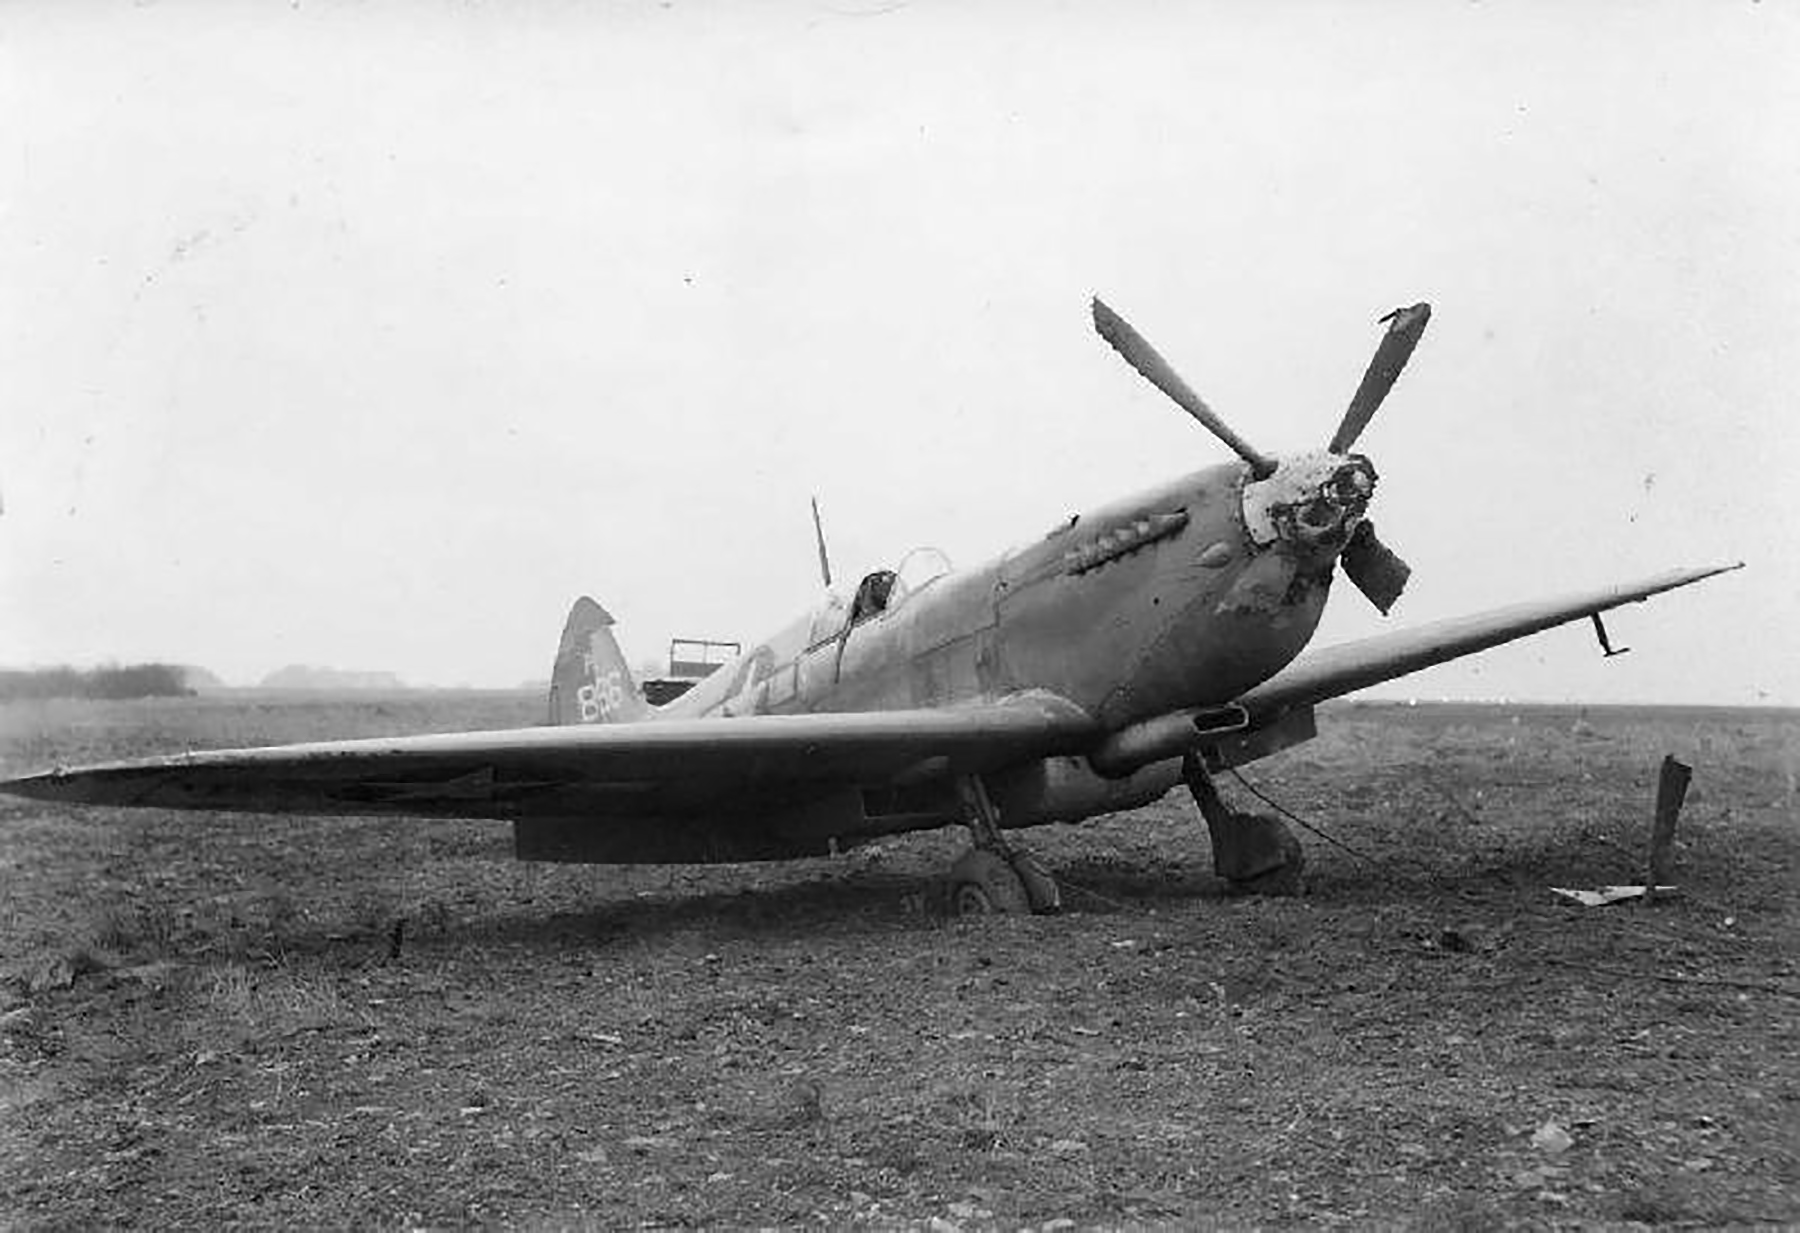 Spitfire PRXI USAAF 7PG14PS Irving L Rawlings PL866 Kings Cliffe Jan 15 1945 01